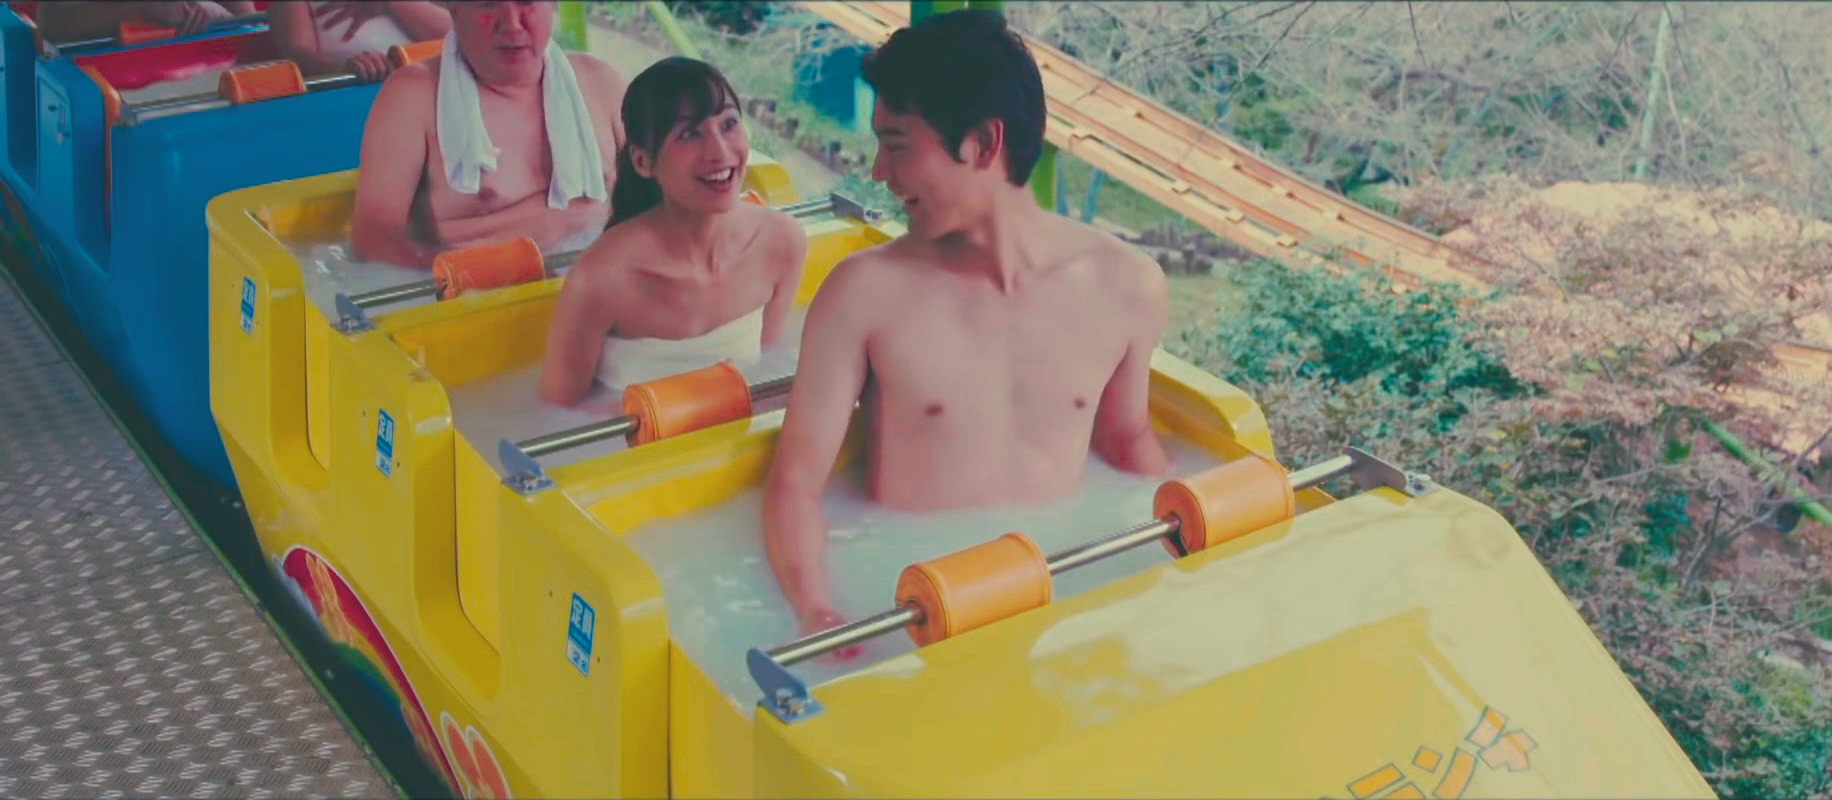 A spa-themed amusement park could become a reality in the Japanese city of Beppu.